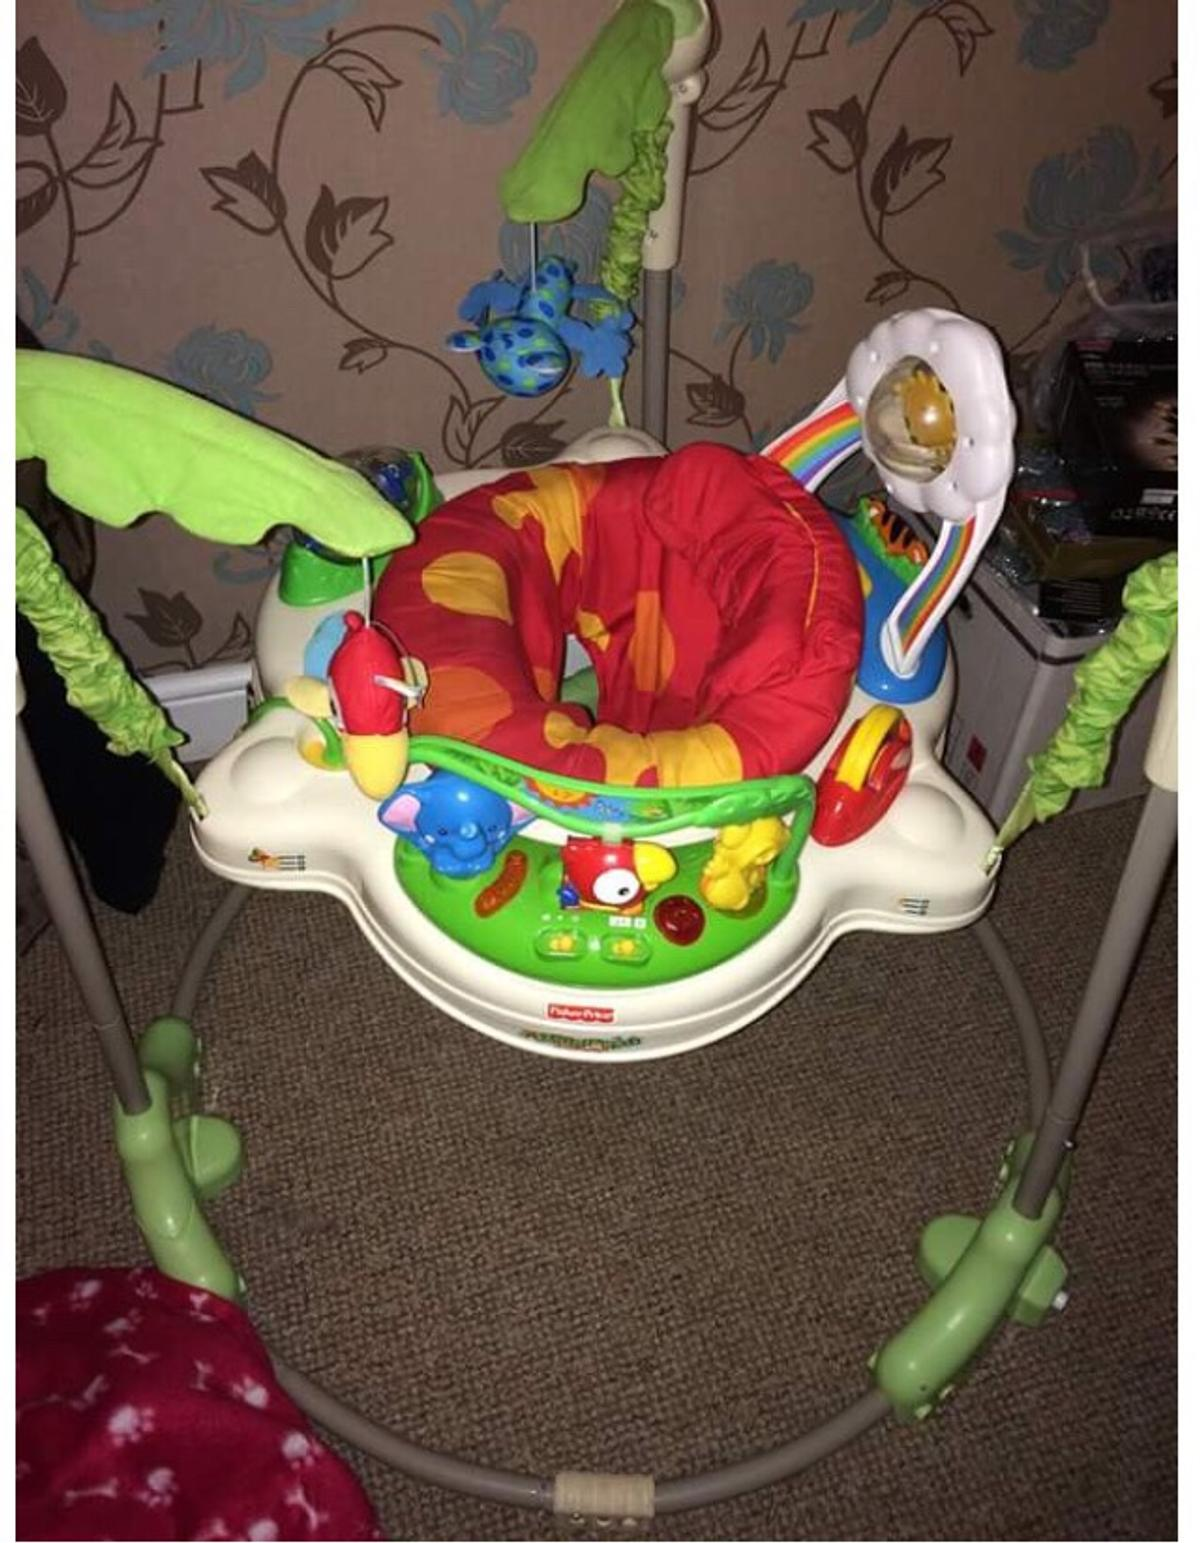 12afbd680 Jungle jump a roo in WS13 Lichfield for £25.00 for sale - Shpock